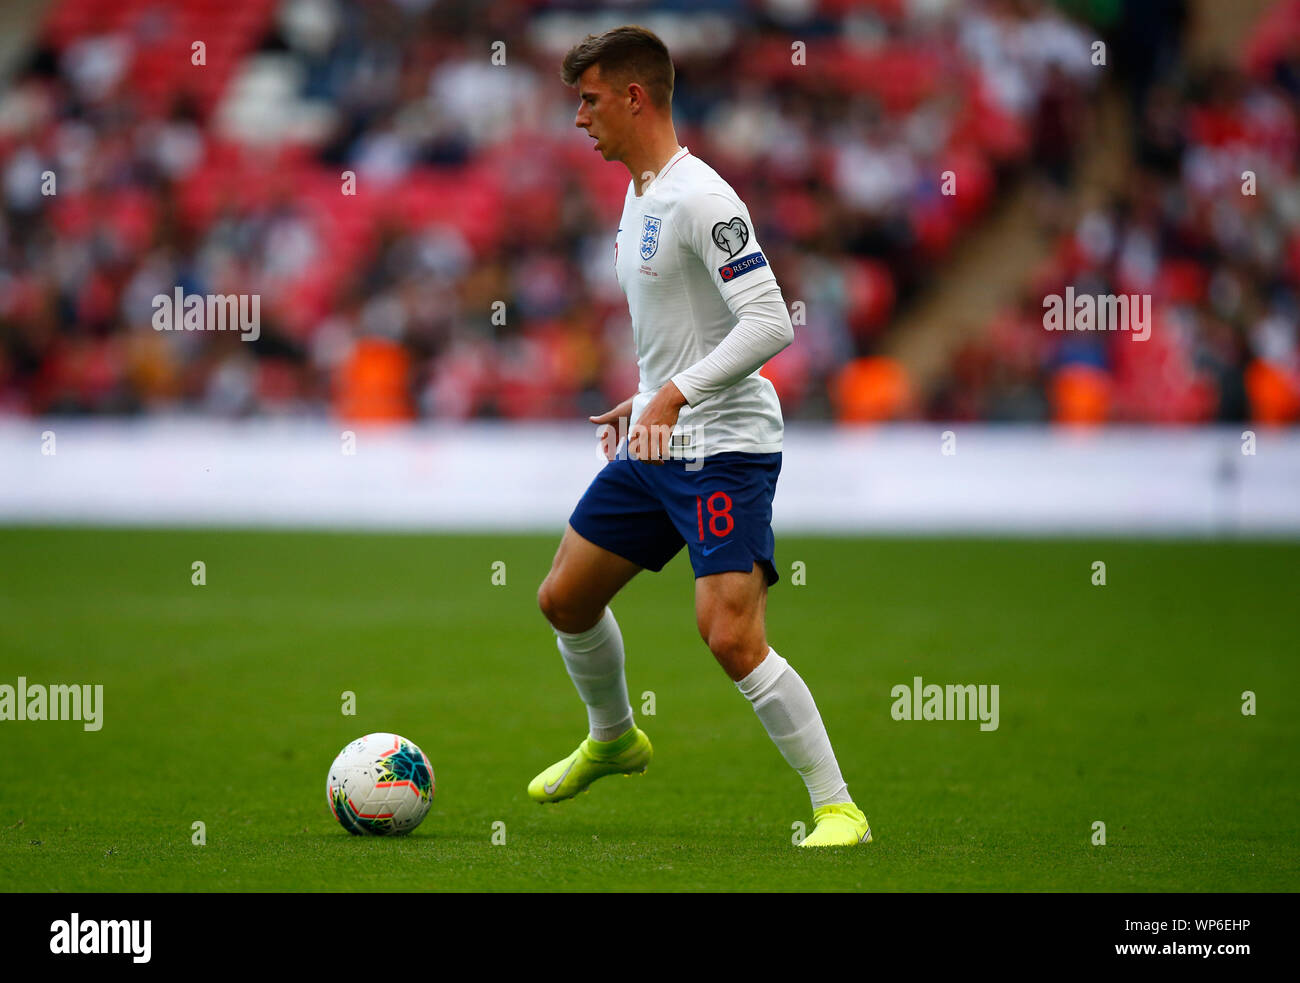 London, UK. 07th Sep, 2019. LONDON, ENGLAND. SEPTEMBER 07: Mason Mount of England during UEFA Euro 2020 Qualifier between England and Bulgaria at Wembley stadium in London, England on September 07, 2019 Credit: Action Foto Sport/Alamy Live News Stock Photo